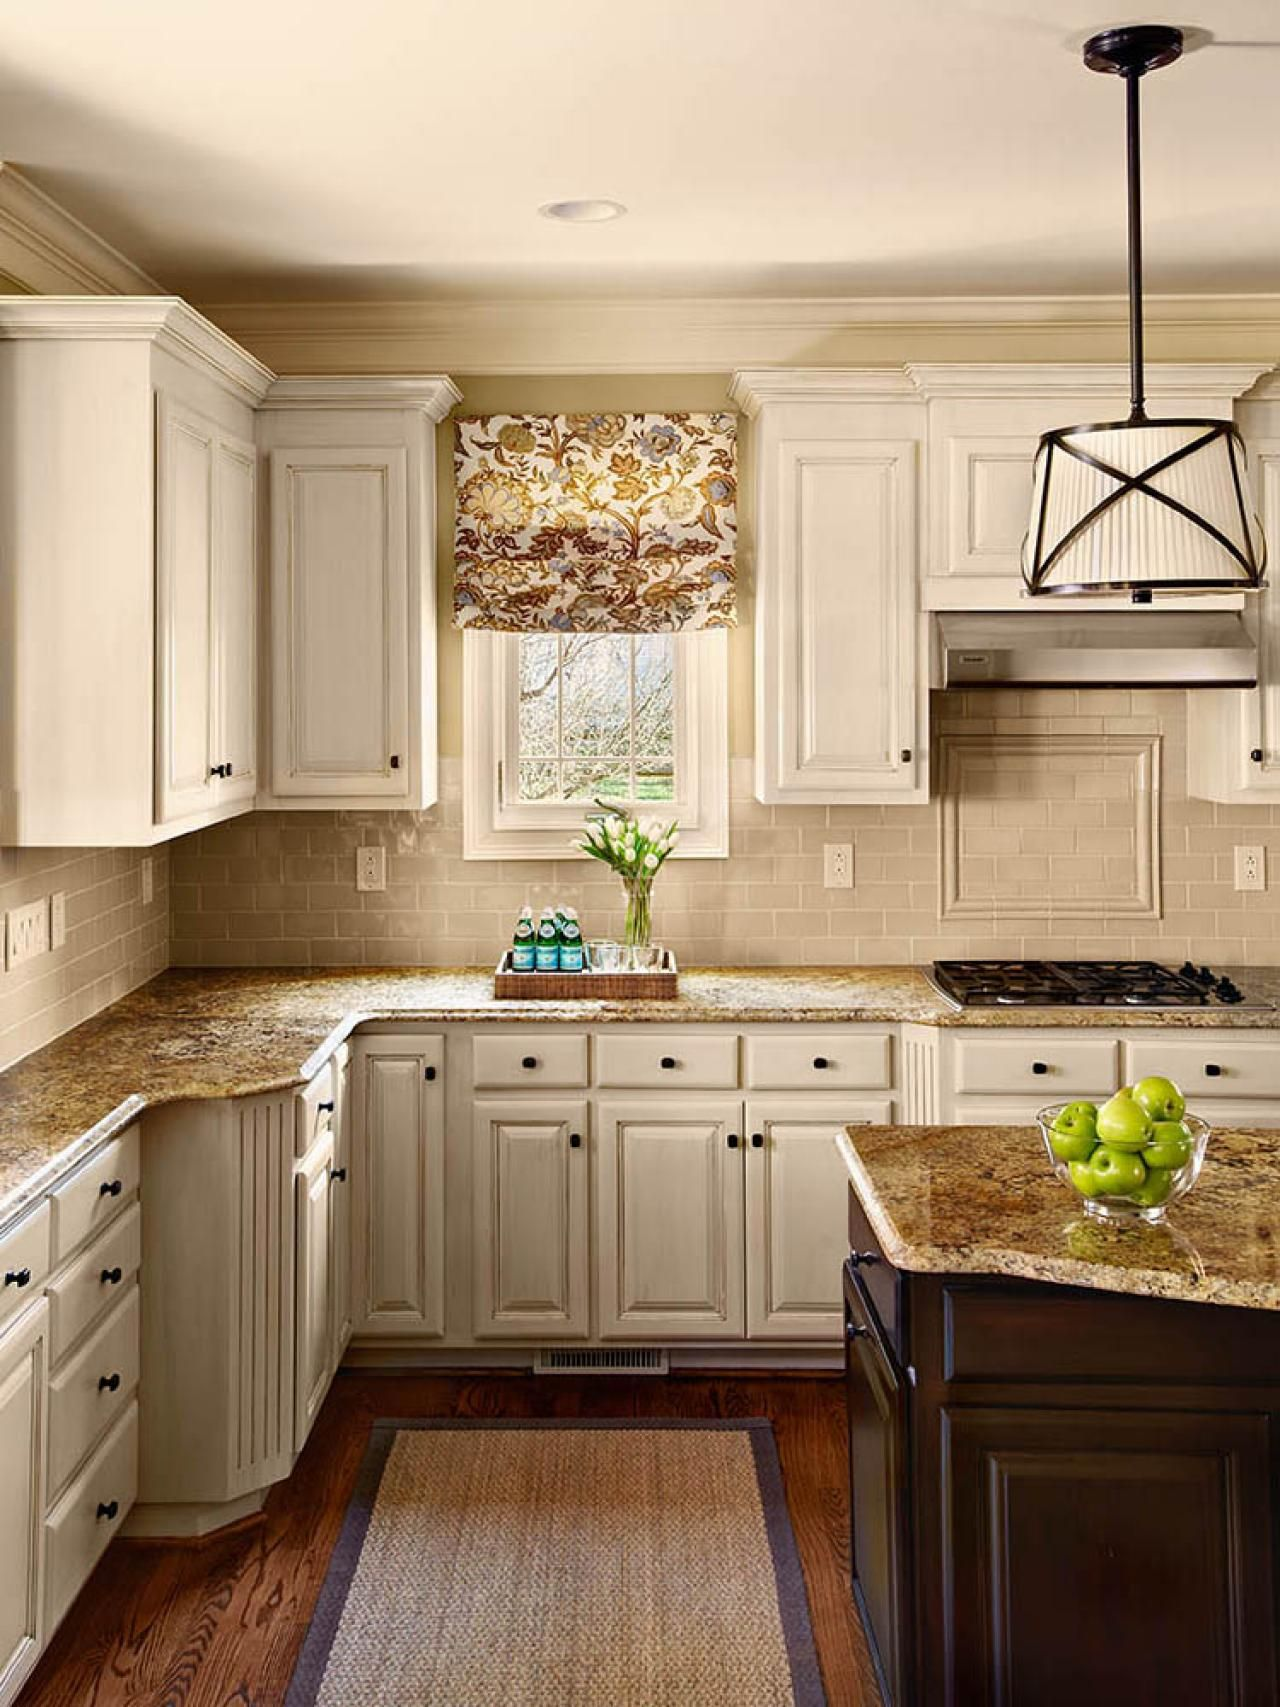 resurfacing kitchen cabinets: pictures & ideas from | cabinet design